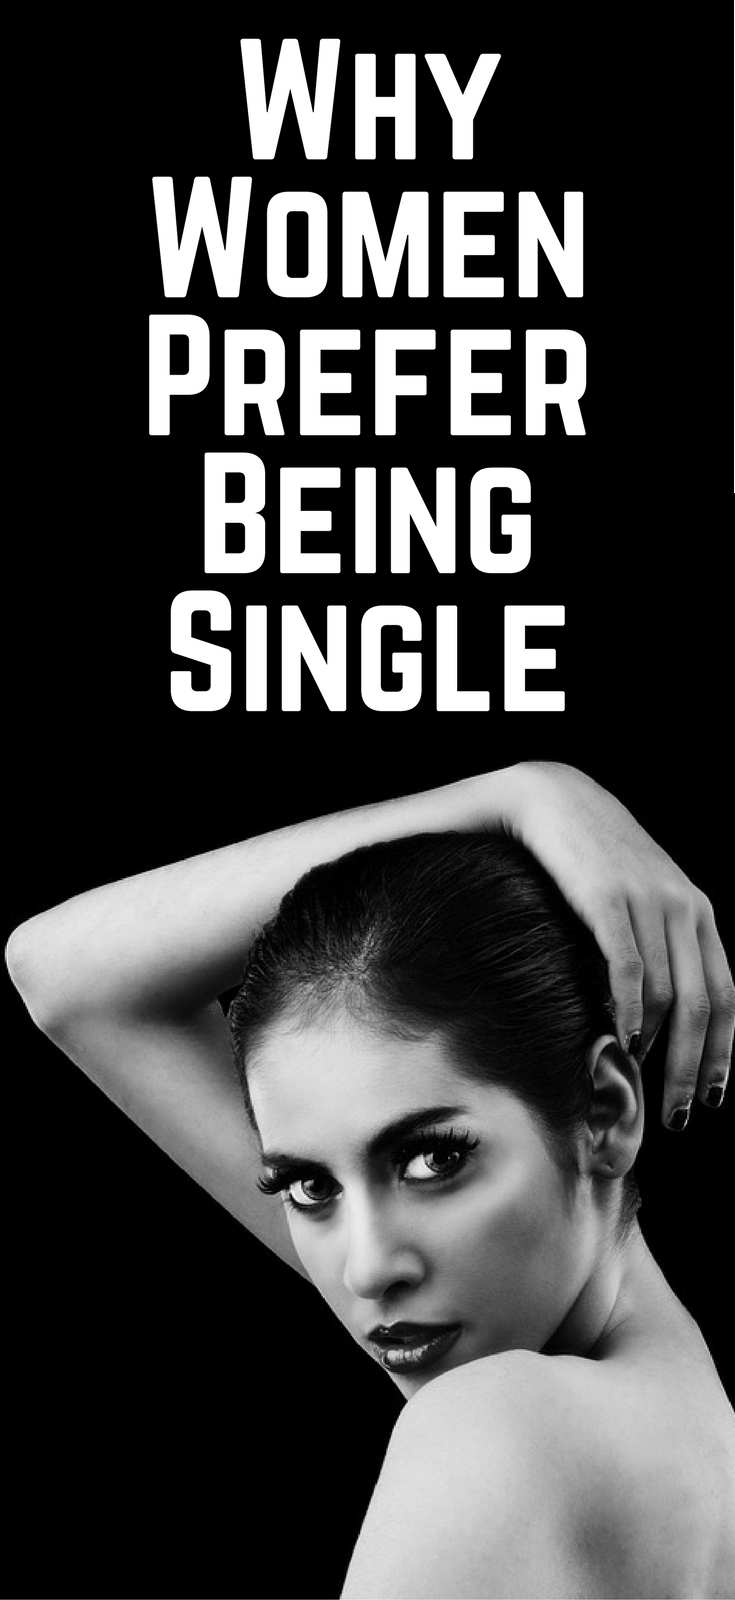 Why Women Prefer Being Single